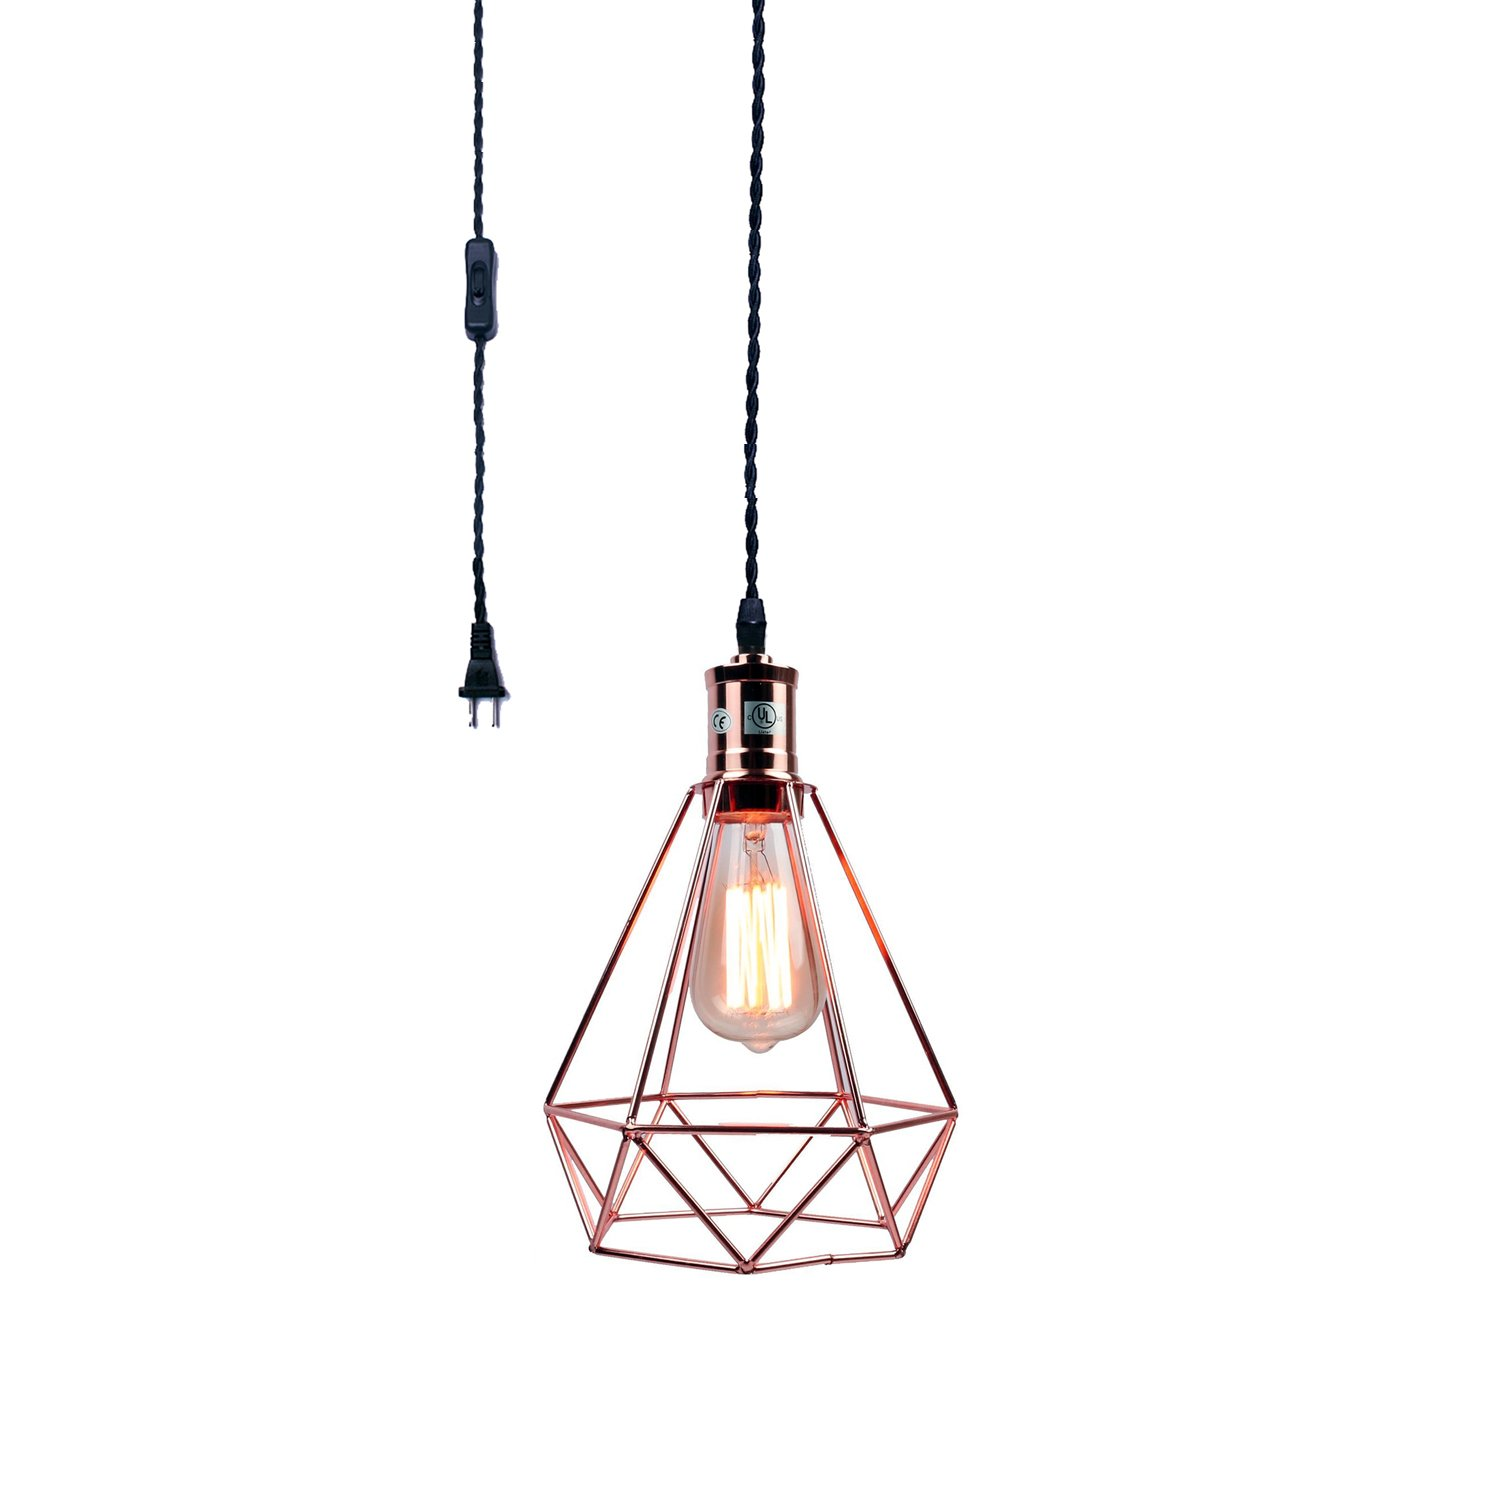 Pauwer Industrial Wire Cage Pendant Light Plug In Vintage Pendant Light with On/off switch (Rose Gold) by Pauwer